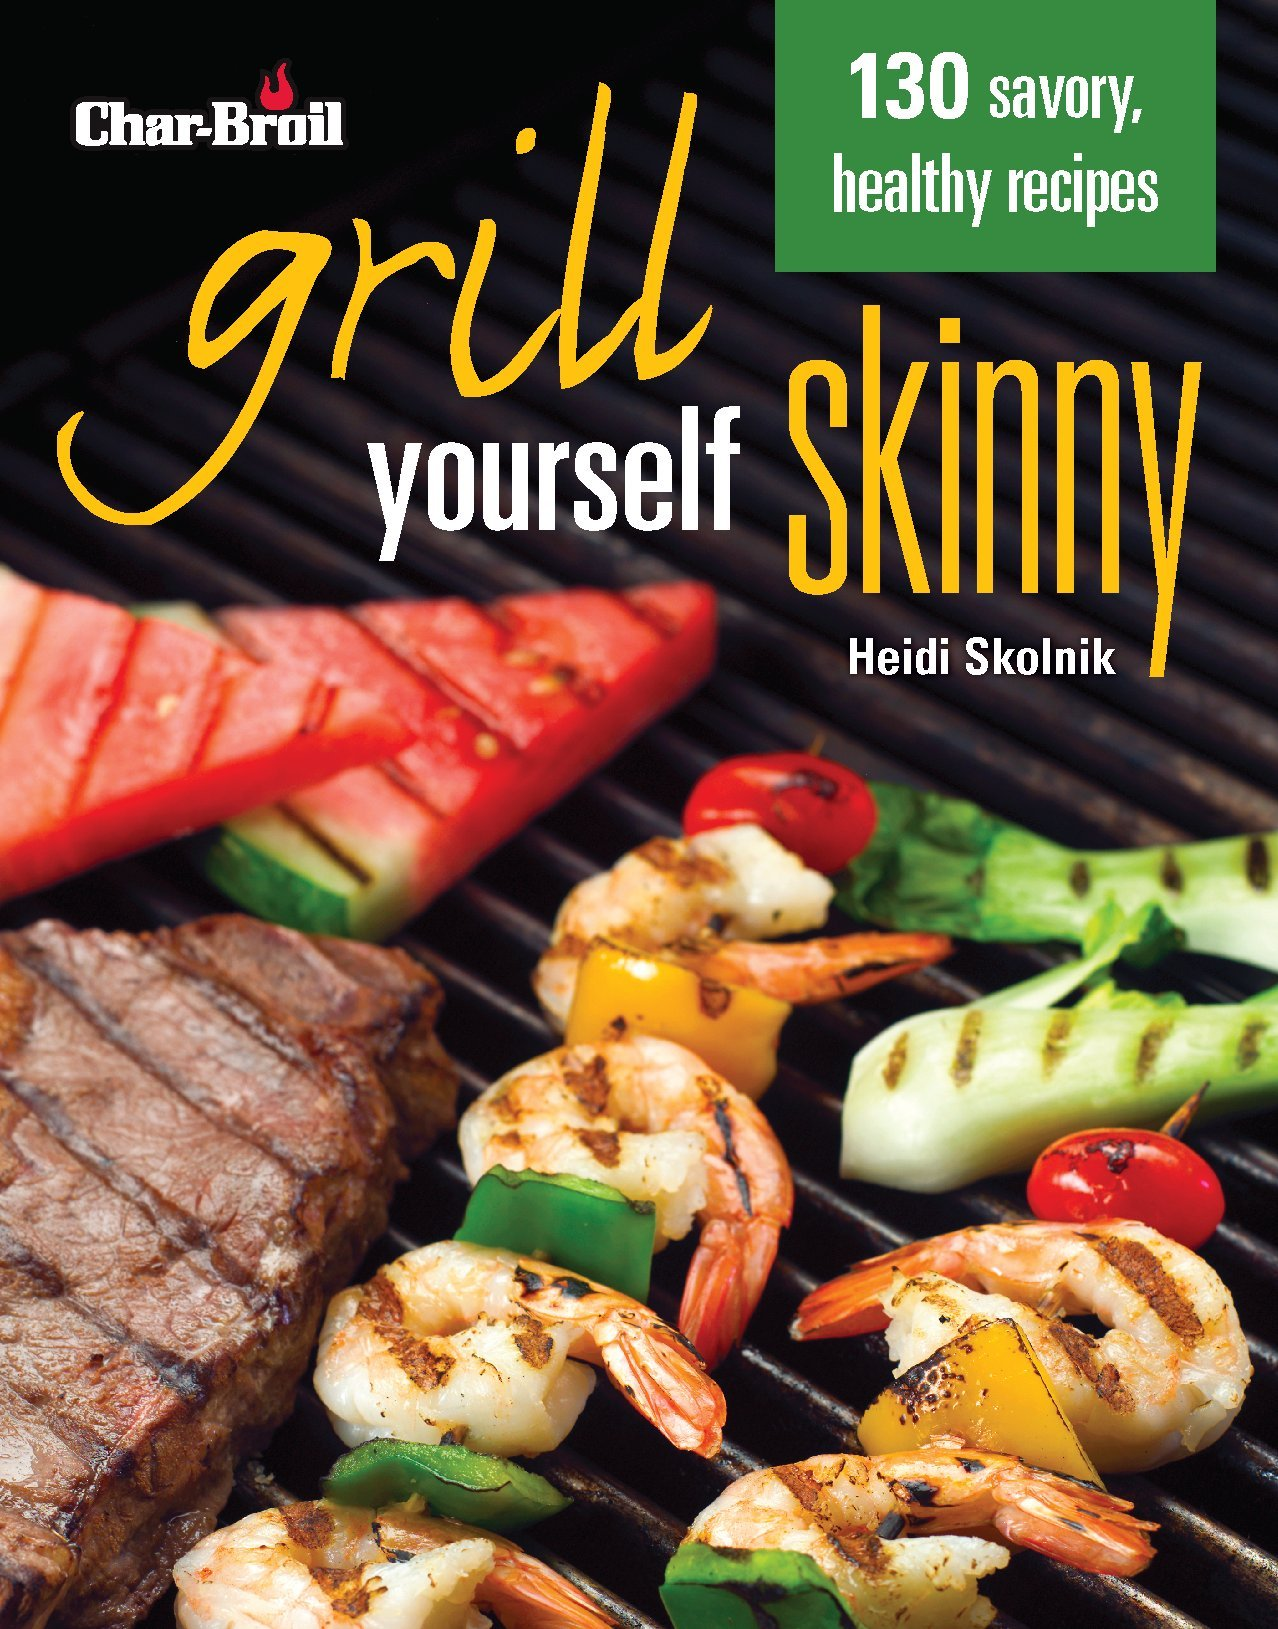 Read Online Char-Broil's Grill Yourself Skinny (Creative Homeowner) 130 Delicious Grilling Recipes from Breakfast Pizza to Rack of Lamb, with Calories, Protein, Fat and Other Nutritional Facts for Each Recipe pdf